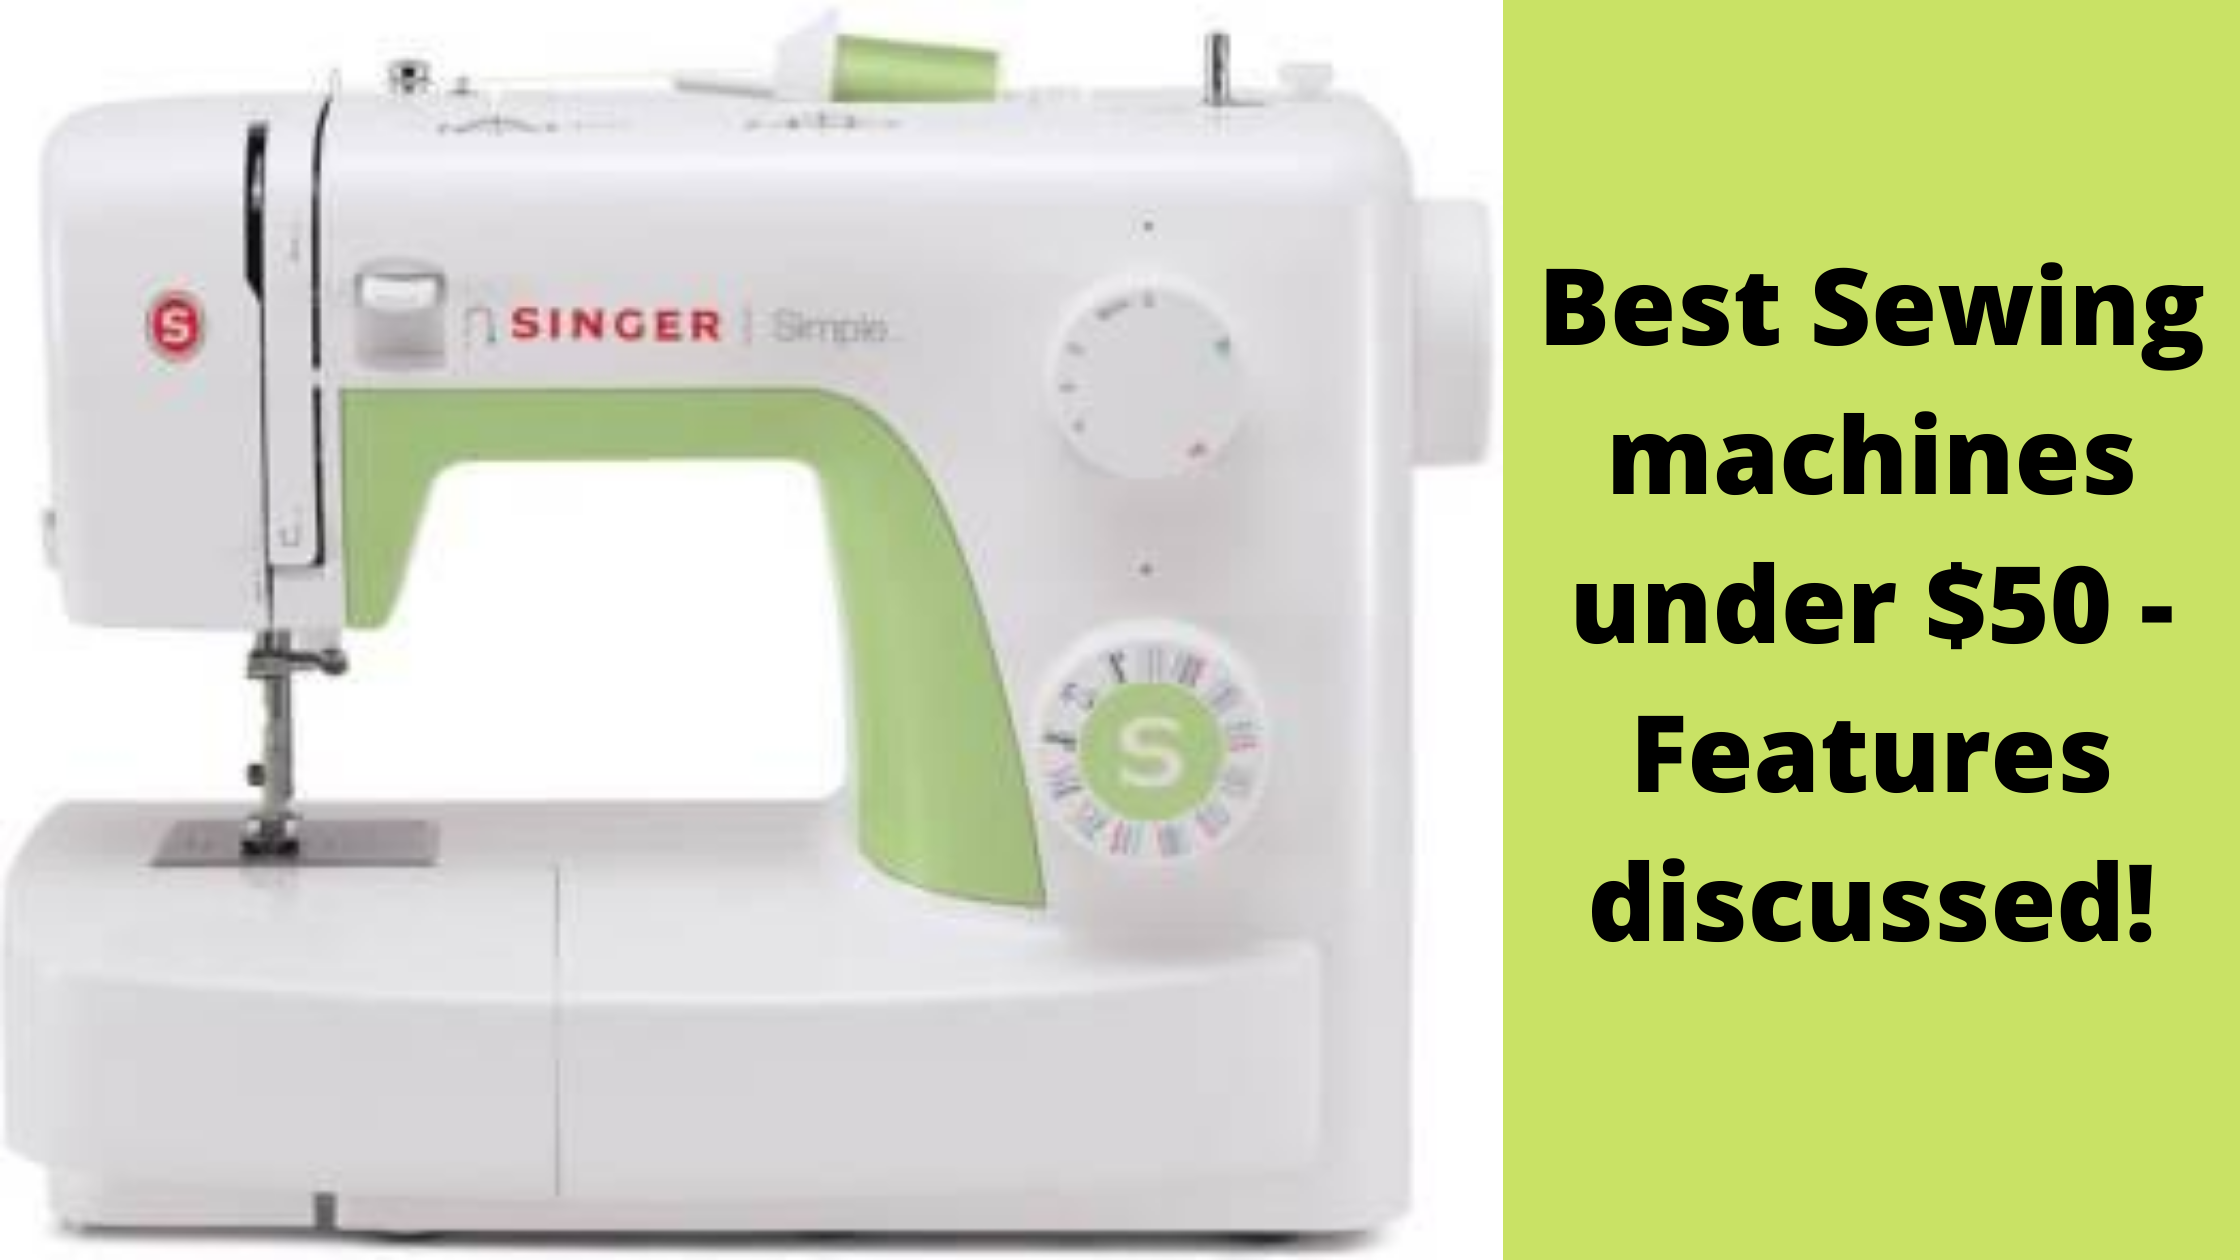 Best Sewing machines under $50 - Features discussed!